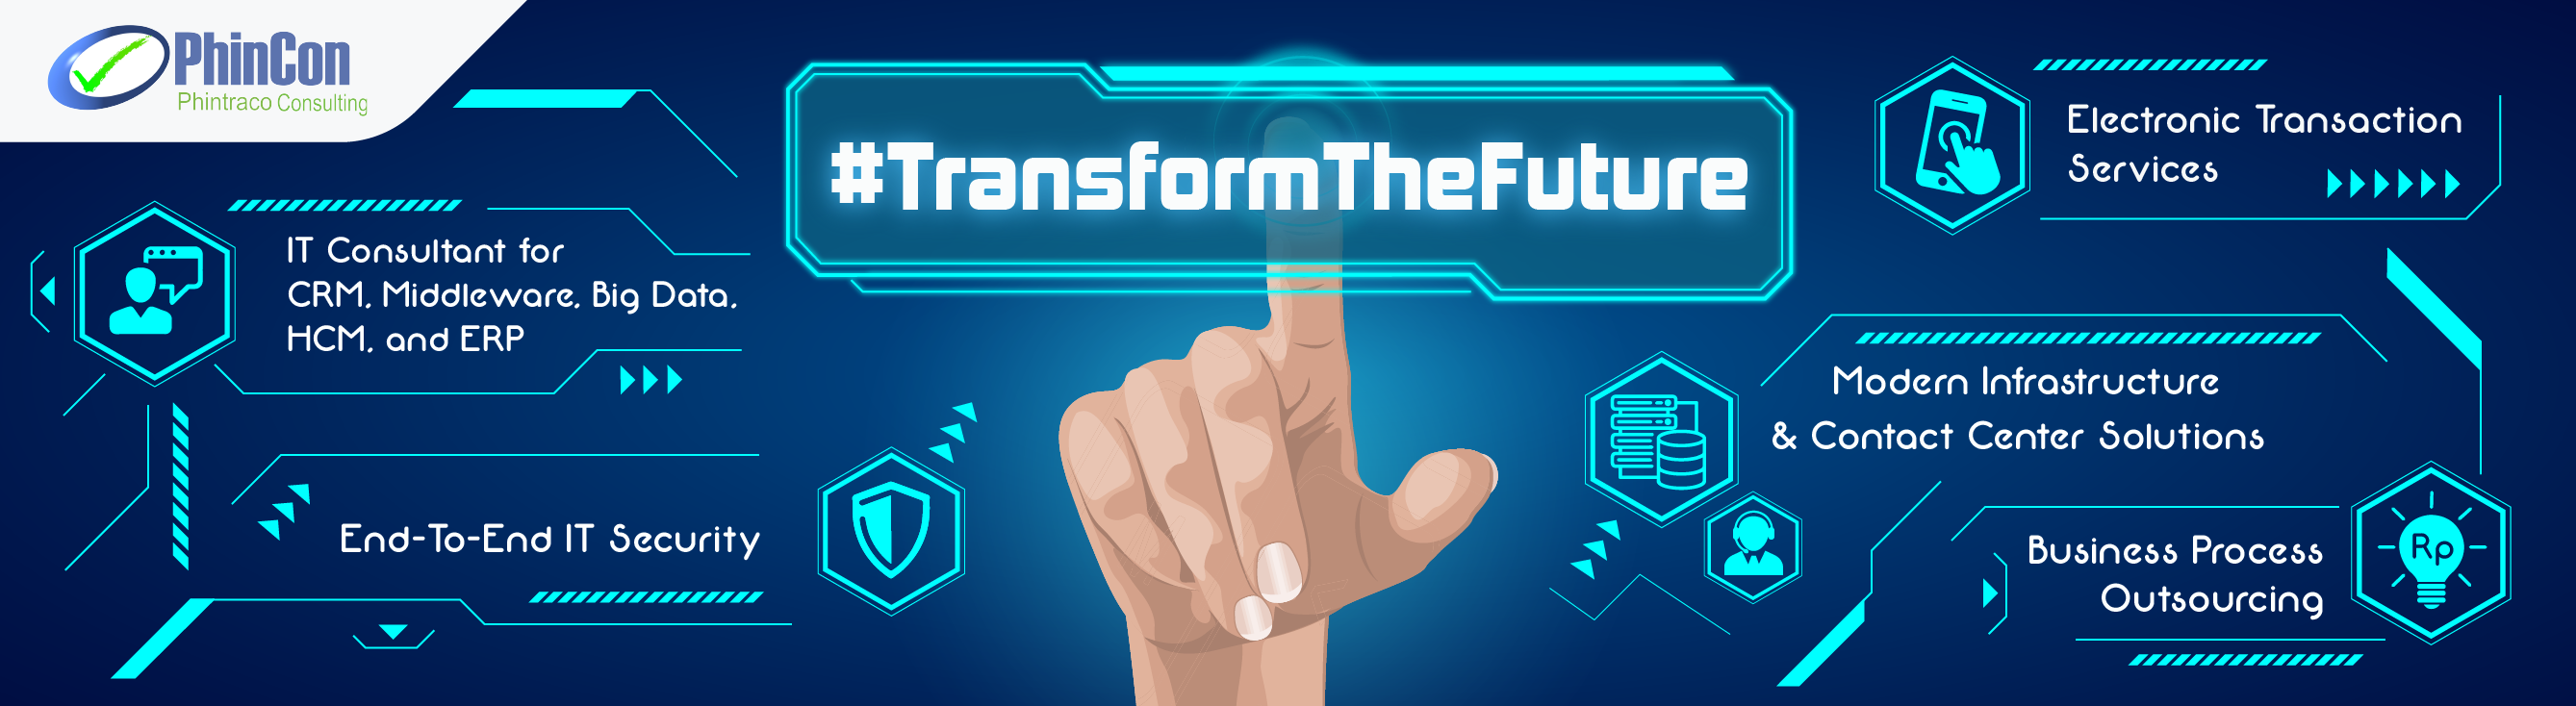 Innovative IT Solutions to Transform the Future of Your Business